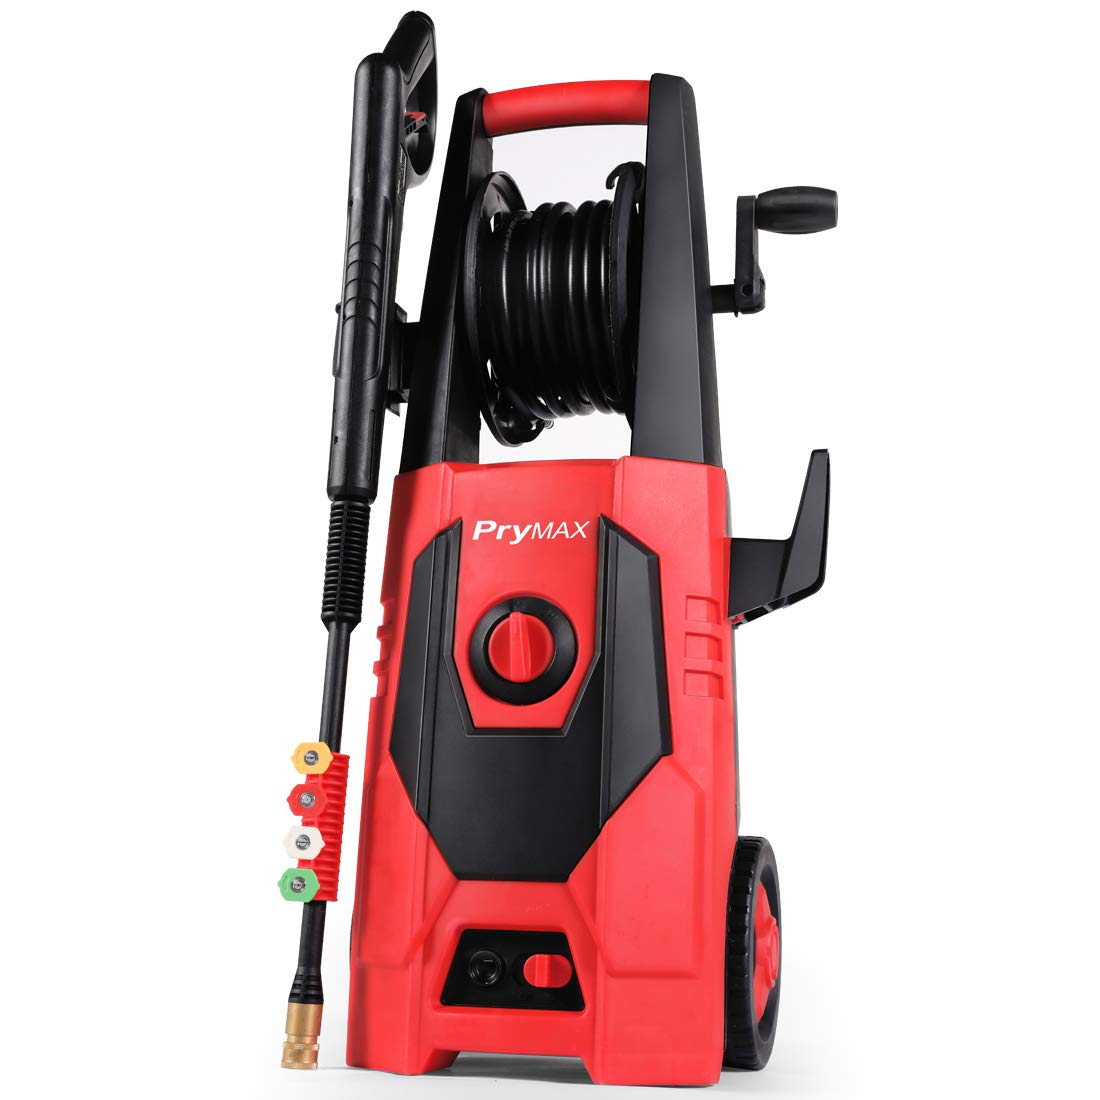 PRYMAX Electric Power Washer 3000 PSI 1.85 GPM Car Electric Pressure Washer with Hose Reel and Interchangeable Nozzles, Red